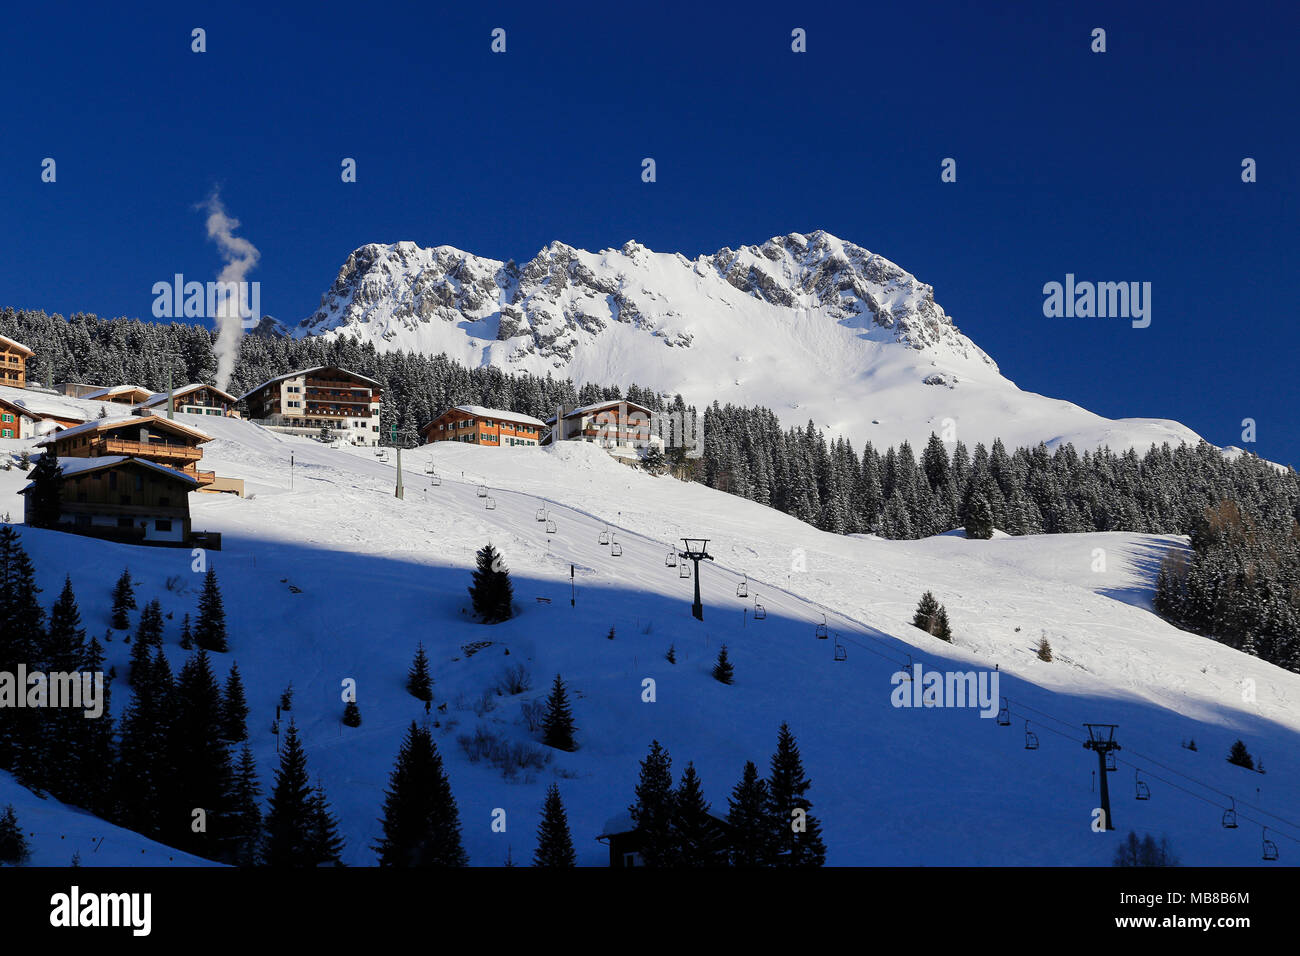 View of the town Lech am Arlberg, Alpine ski resort close to Zurs, St. Anton and Stuben in the Arlberg region of Austria. Stock Photo